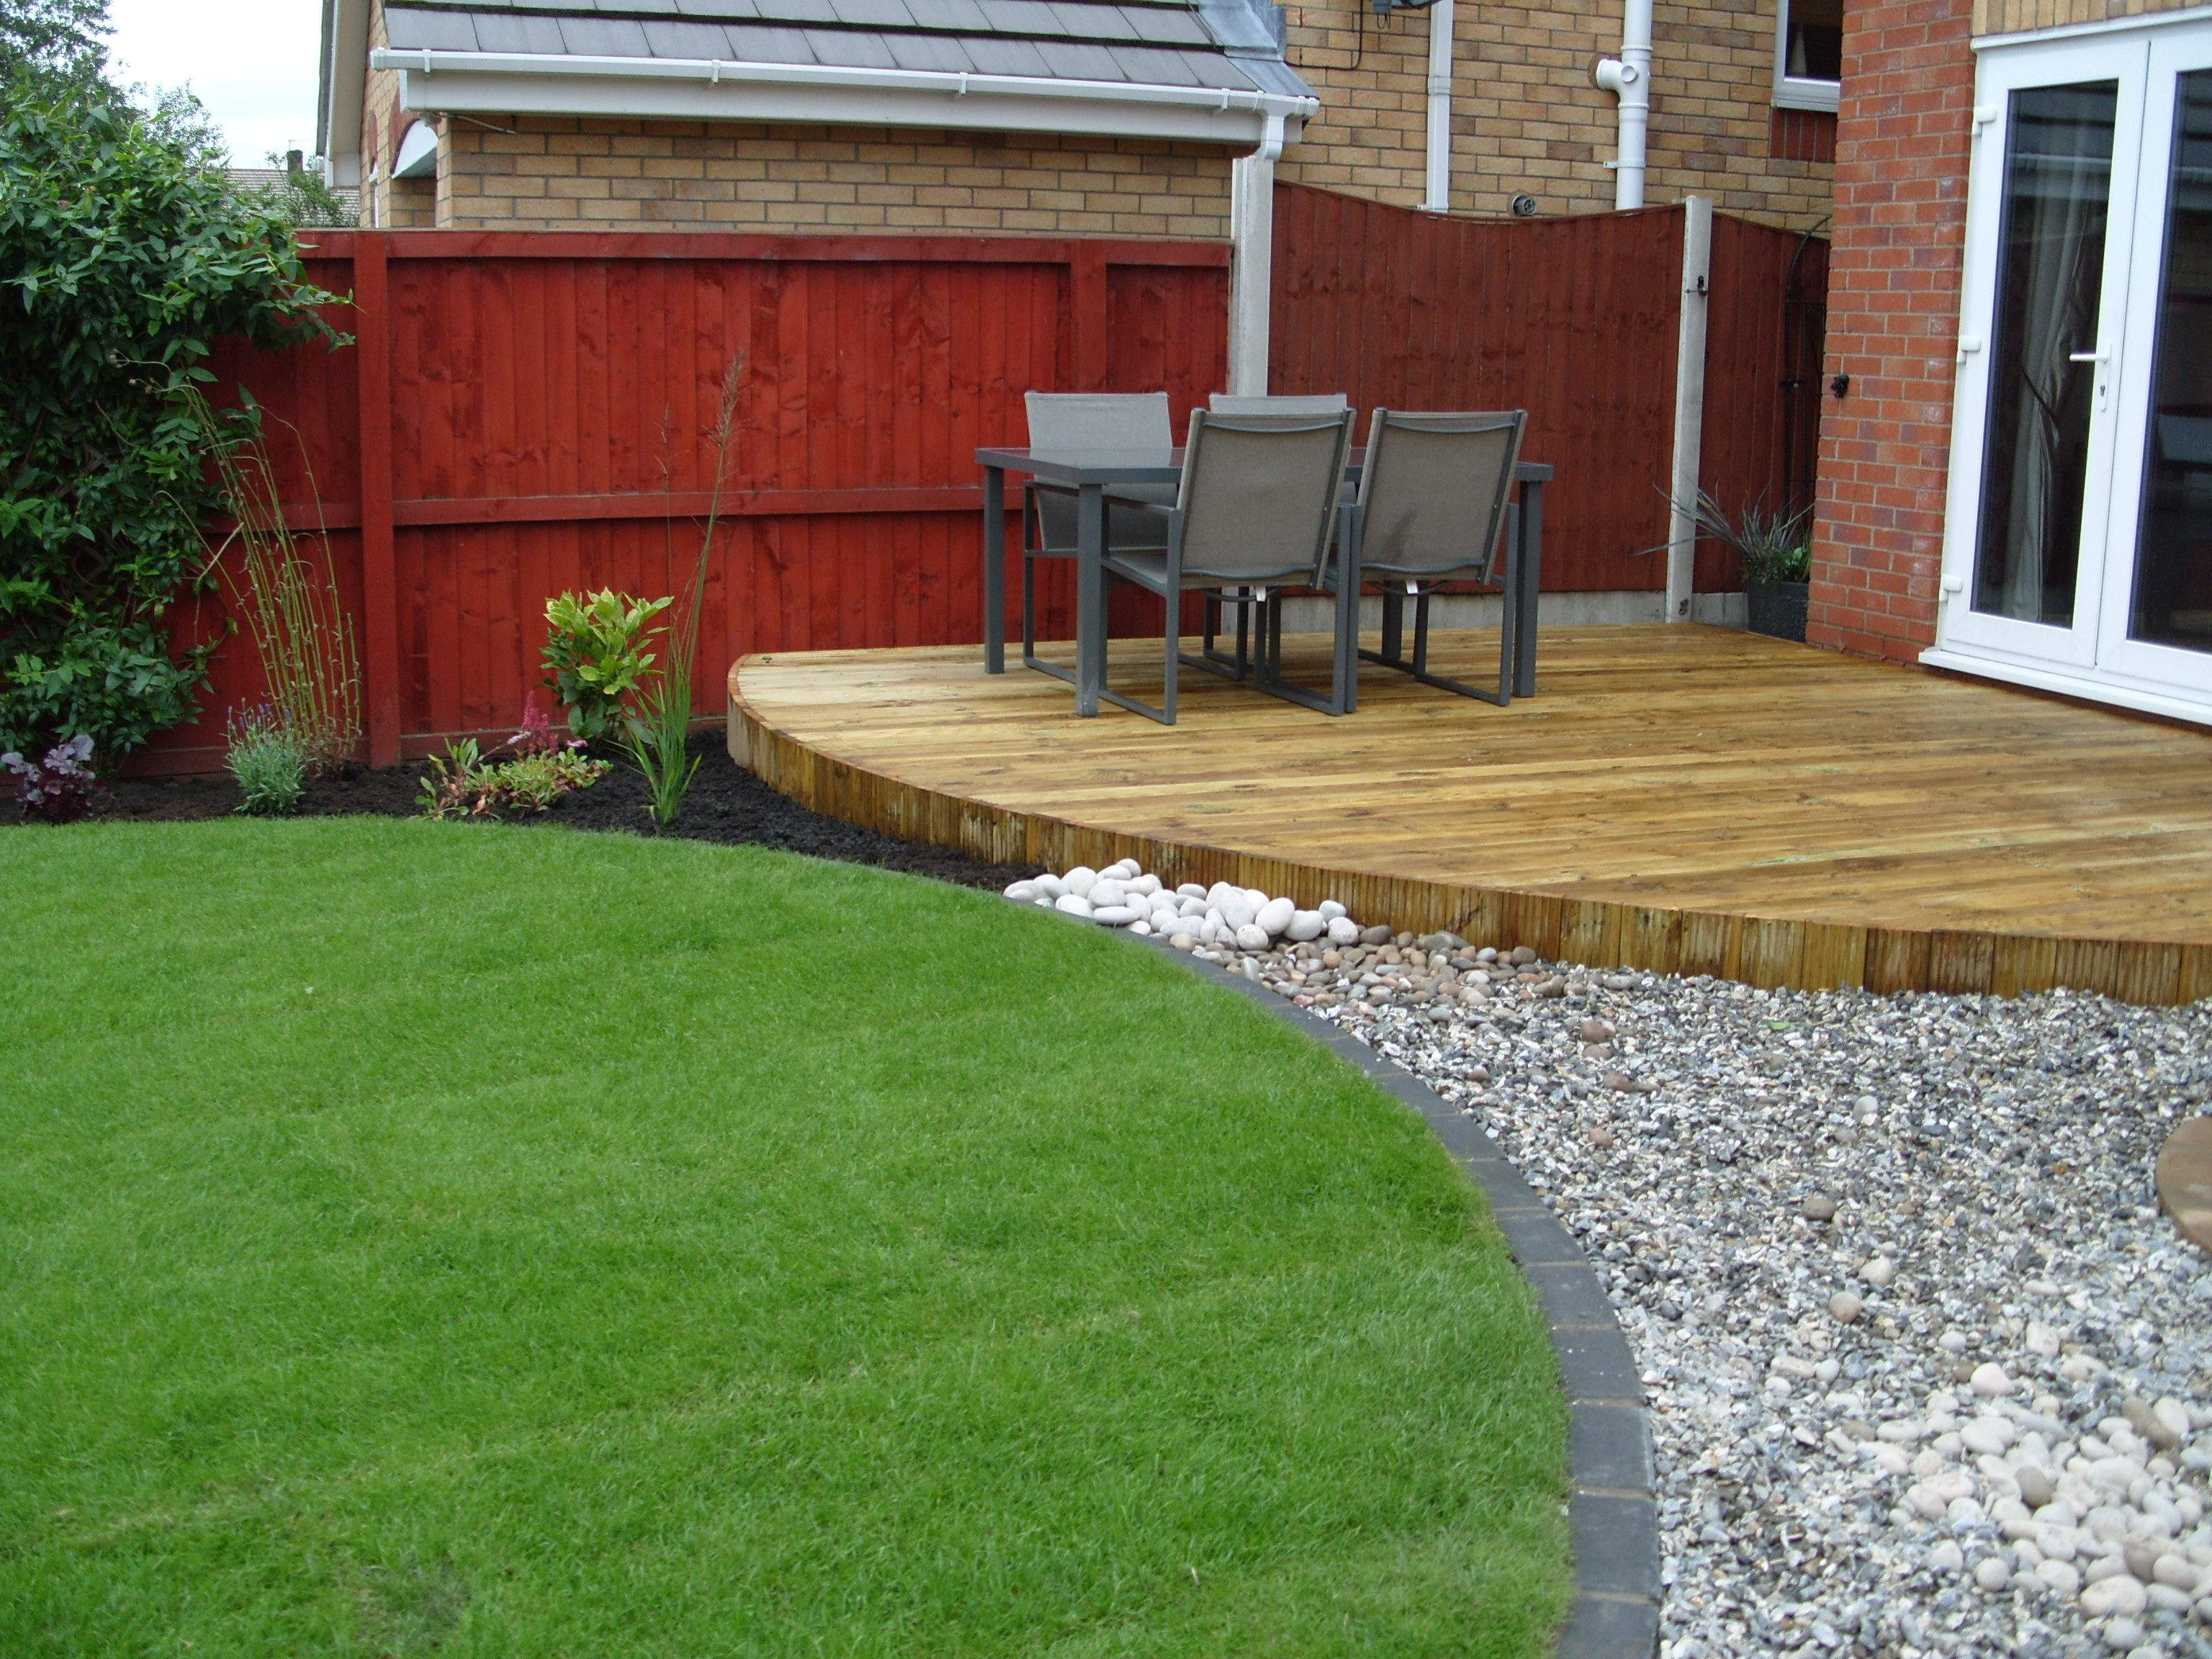 Decking Designs For Small Gardens Design small family garden : angie barker trading as garden design for